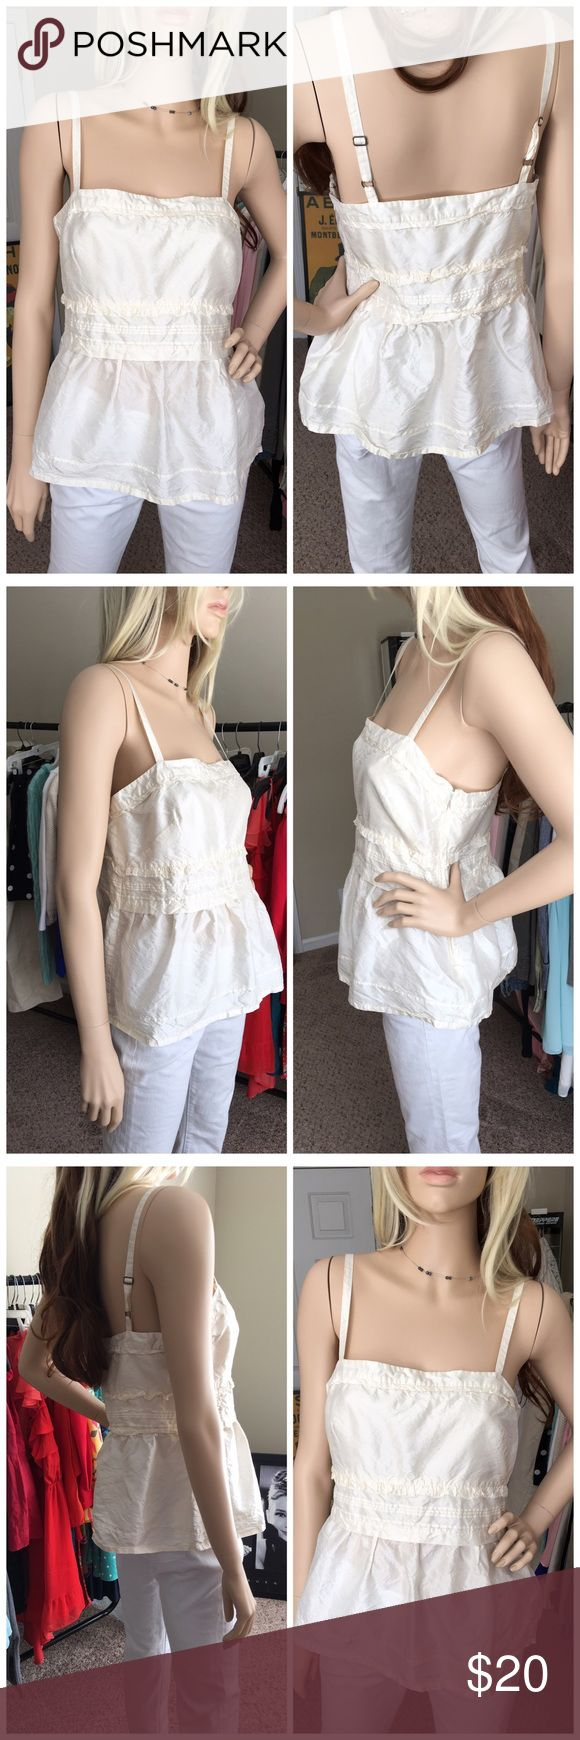 J. Crew 100% Silk Strappy Top Super cute Strappy blouse by J. Crew size 4. Cream color with 100% Silk. Adjustable straps.   No visible rips, holes or stains. The condition is very good. J. Crew Tops